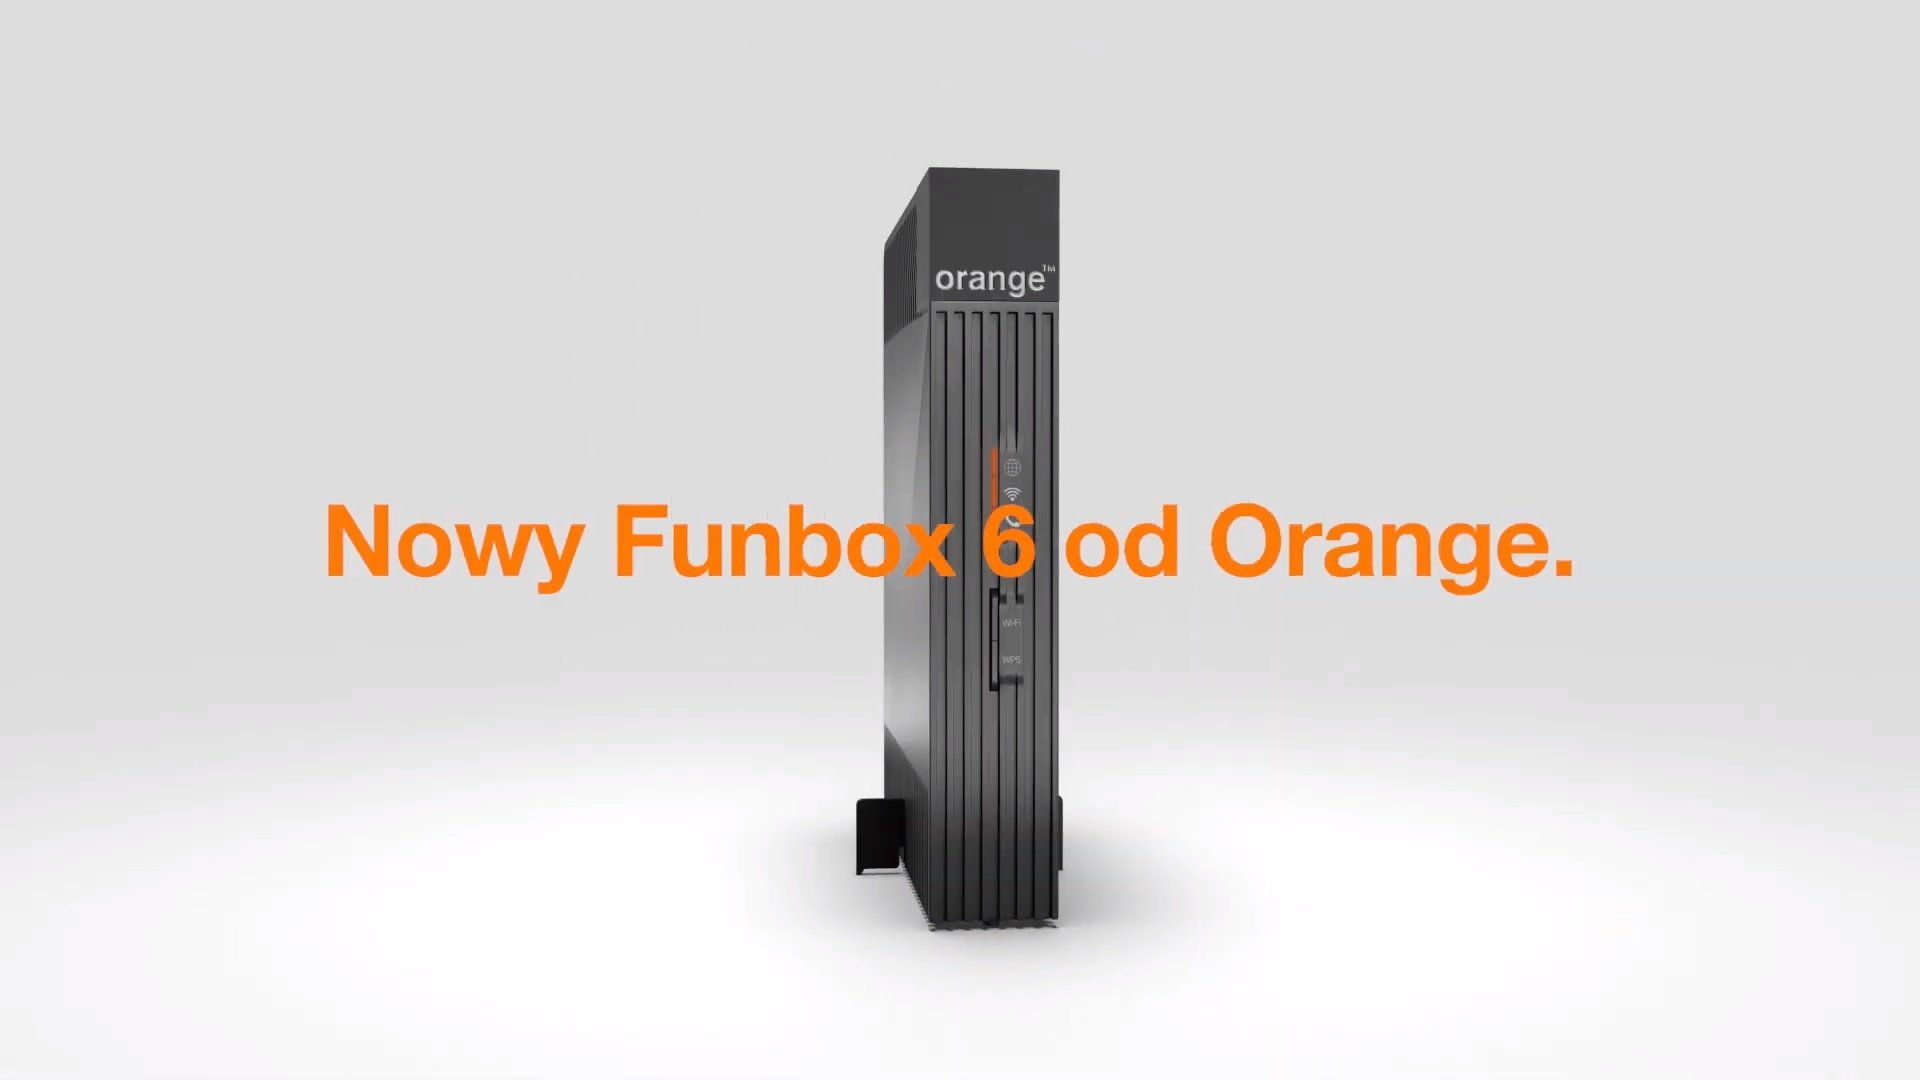 modem Funbox 6 Orange